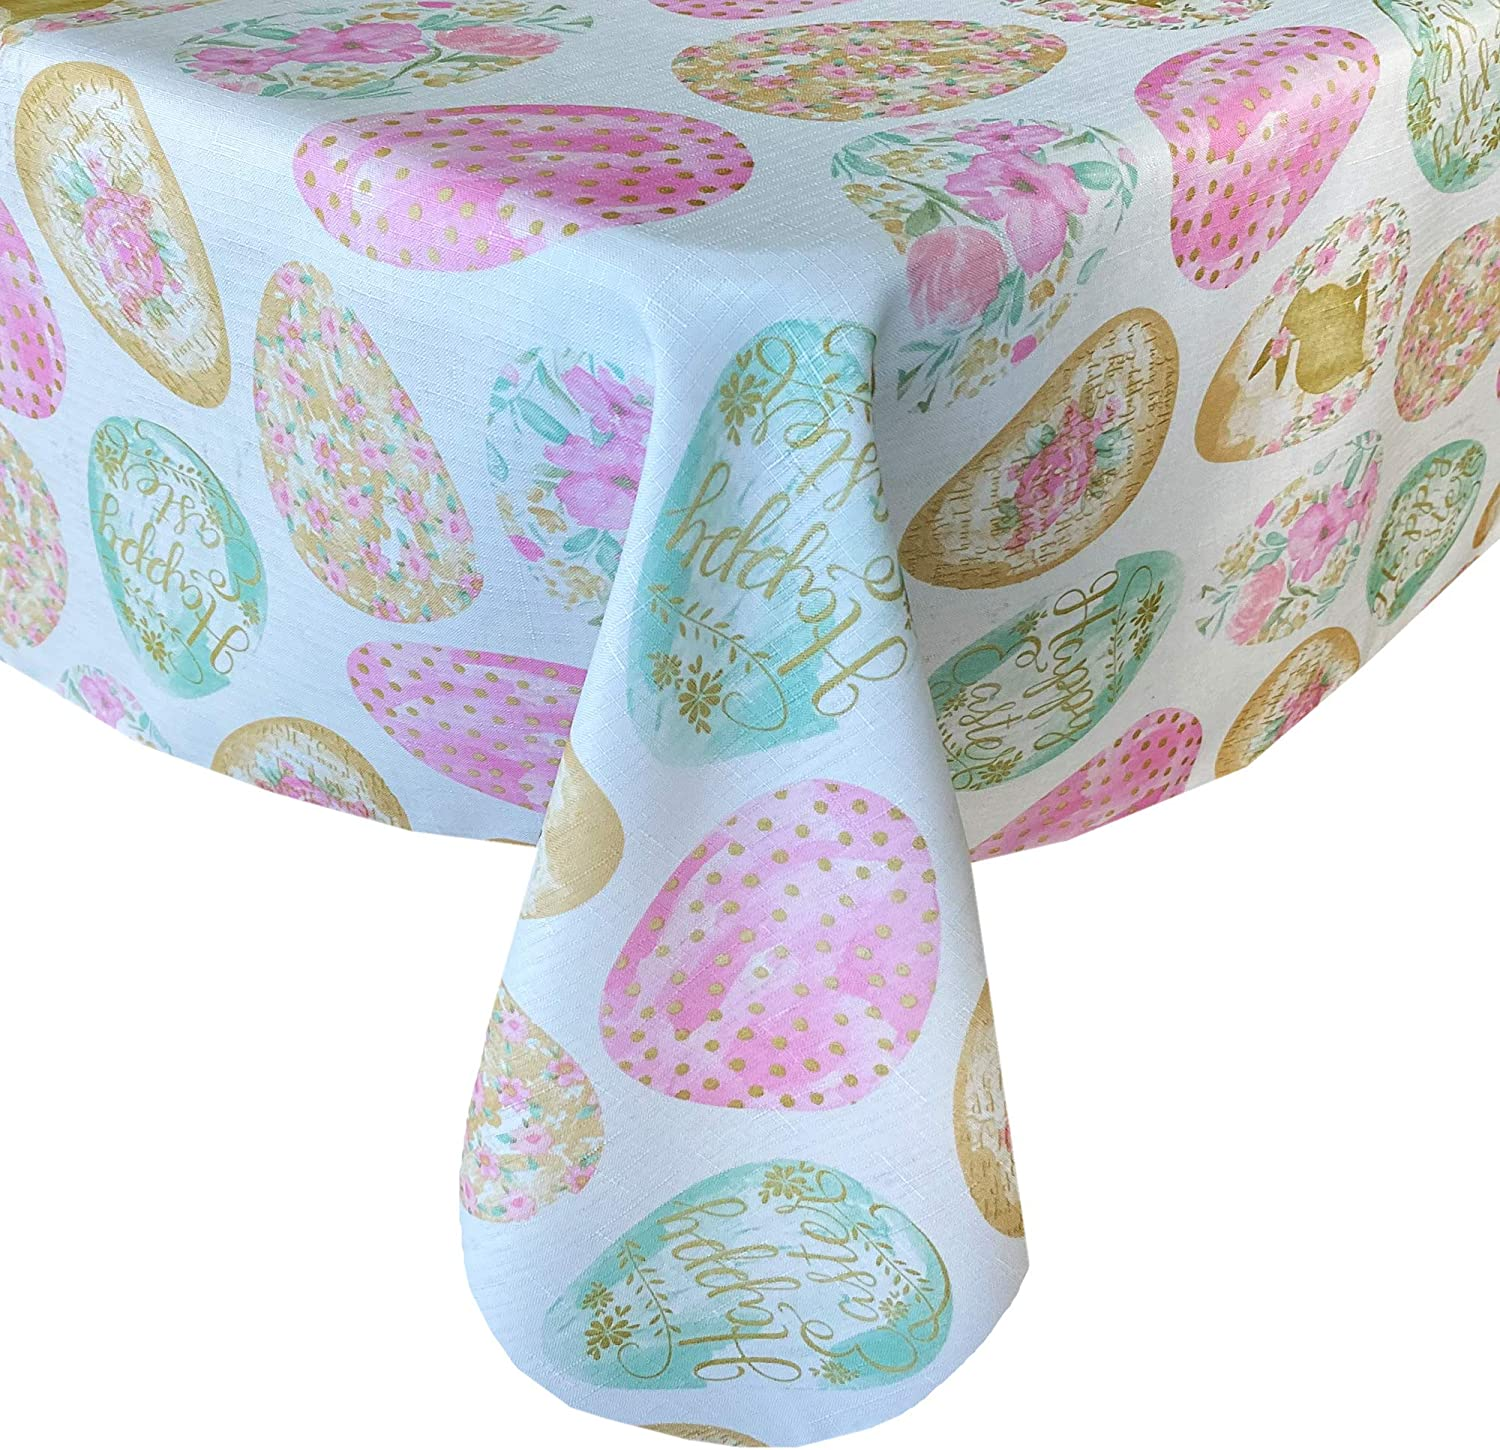 Newbridge Easter Egg Delight Easter And Spring Fabric Tablecloth Happy Easter Bunny Rabbit Decorated Egg Print Easy Care Stain Resistant Fabric Tablecloth 52 X 52 Square Home Kitchen